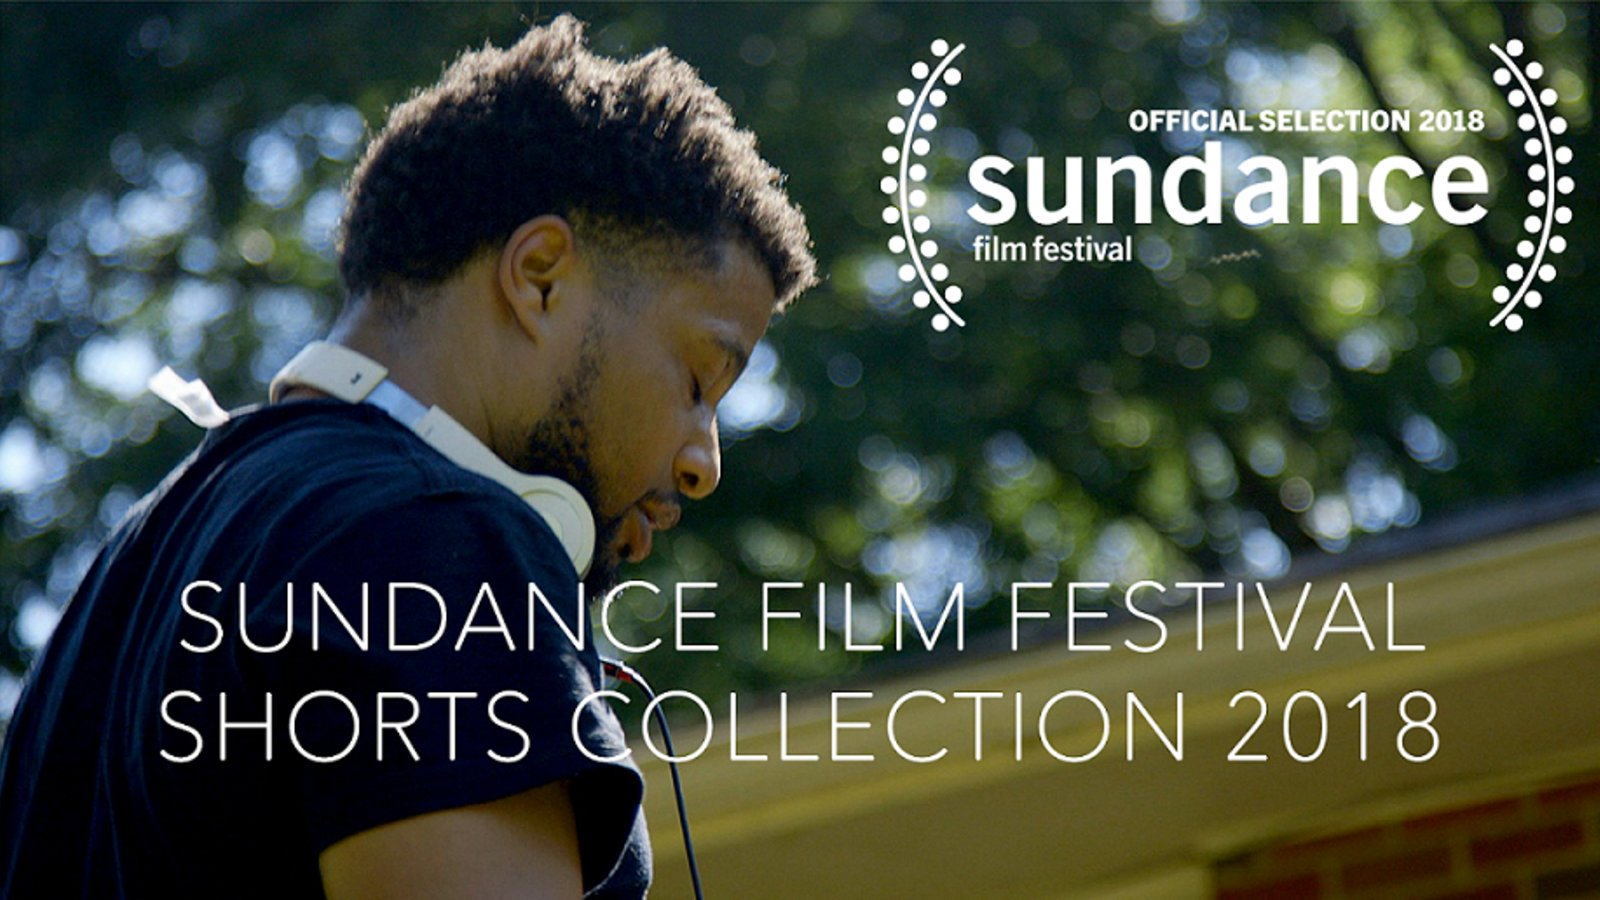 Sundance Film Festival Shorts Collection 2018